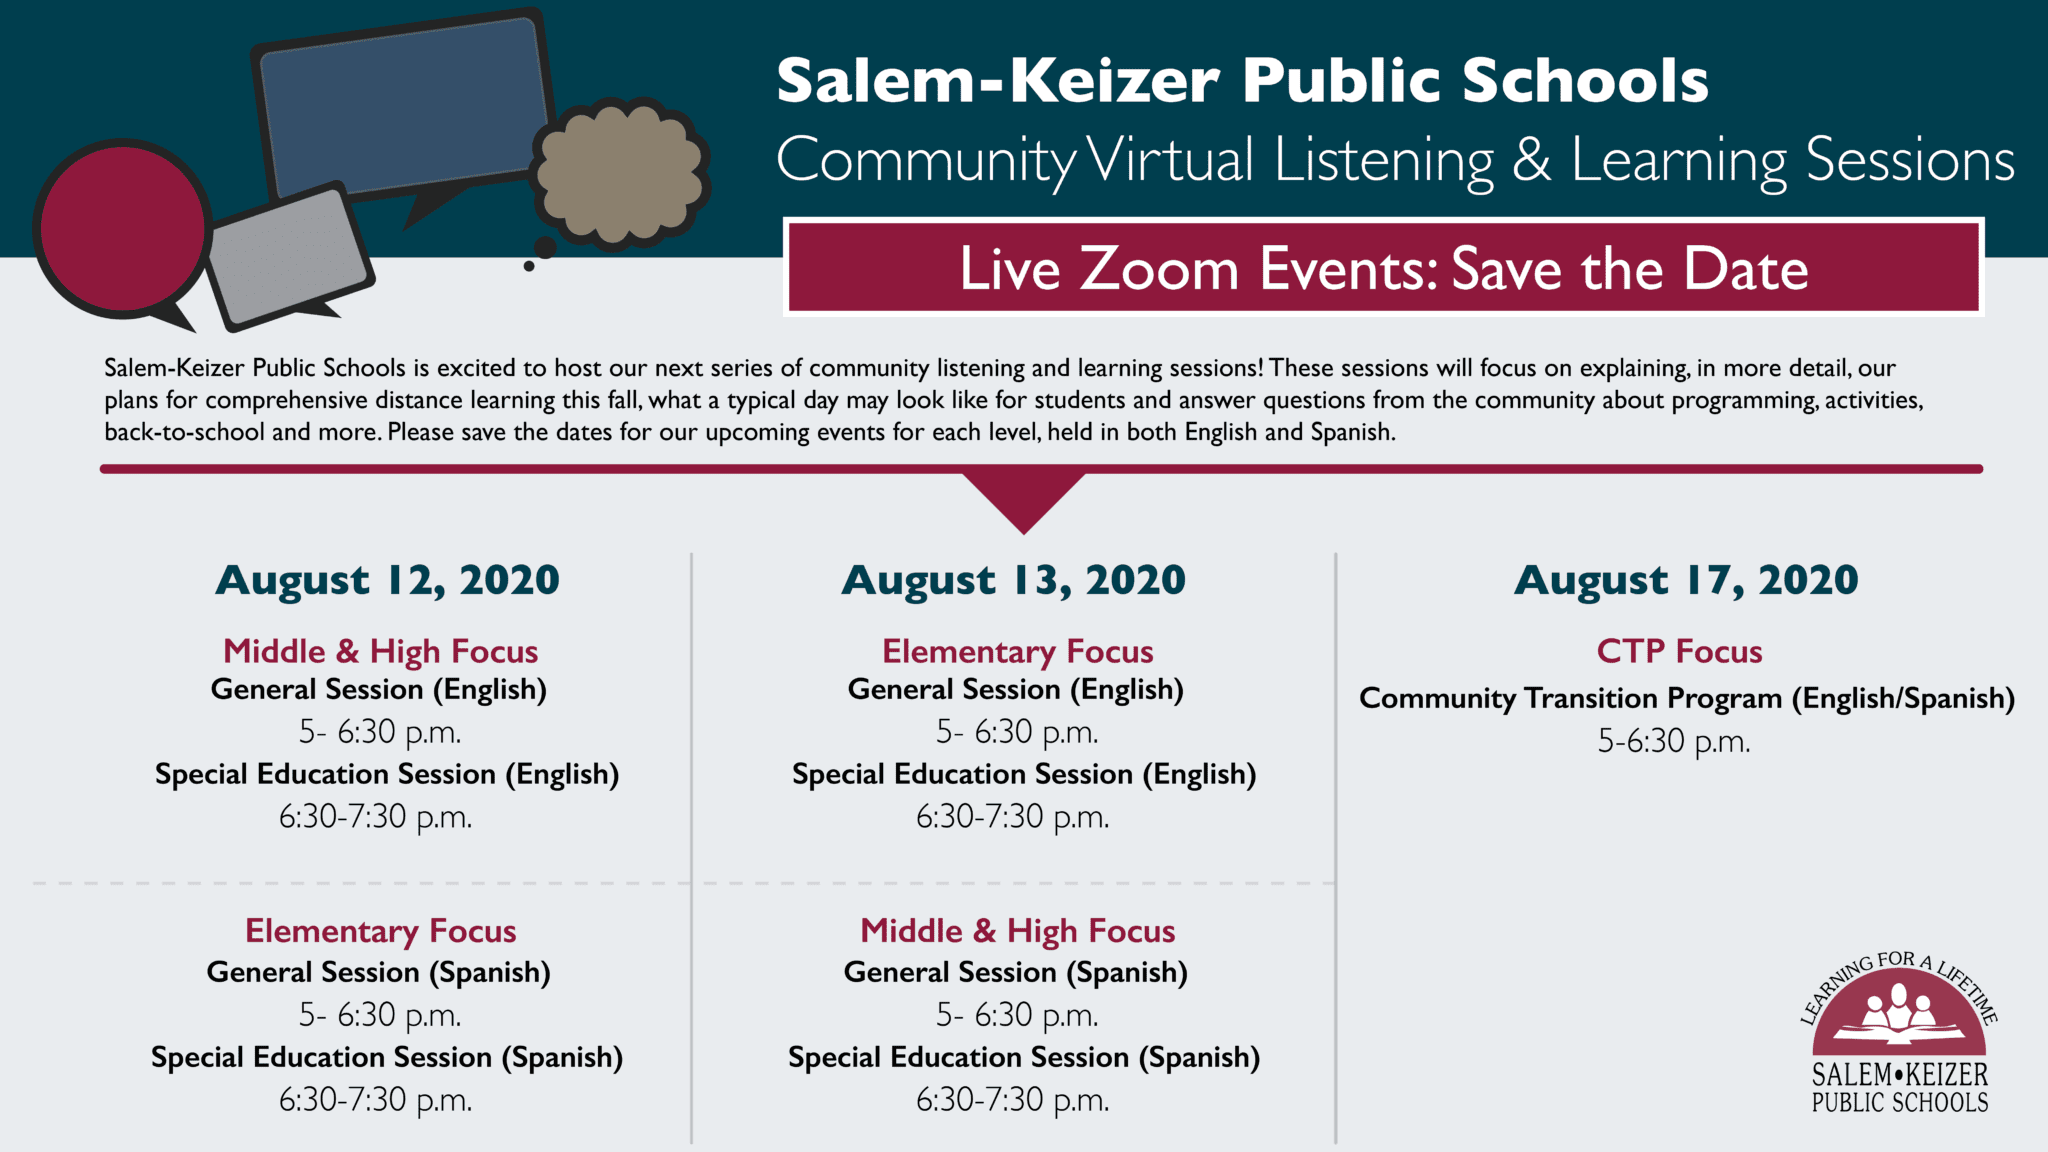 Live Zoom Events for Parents